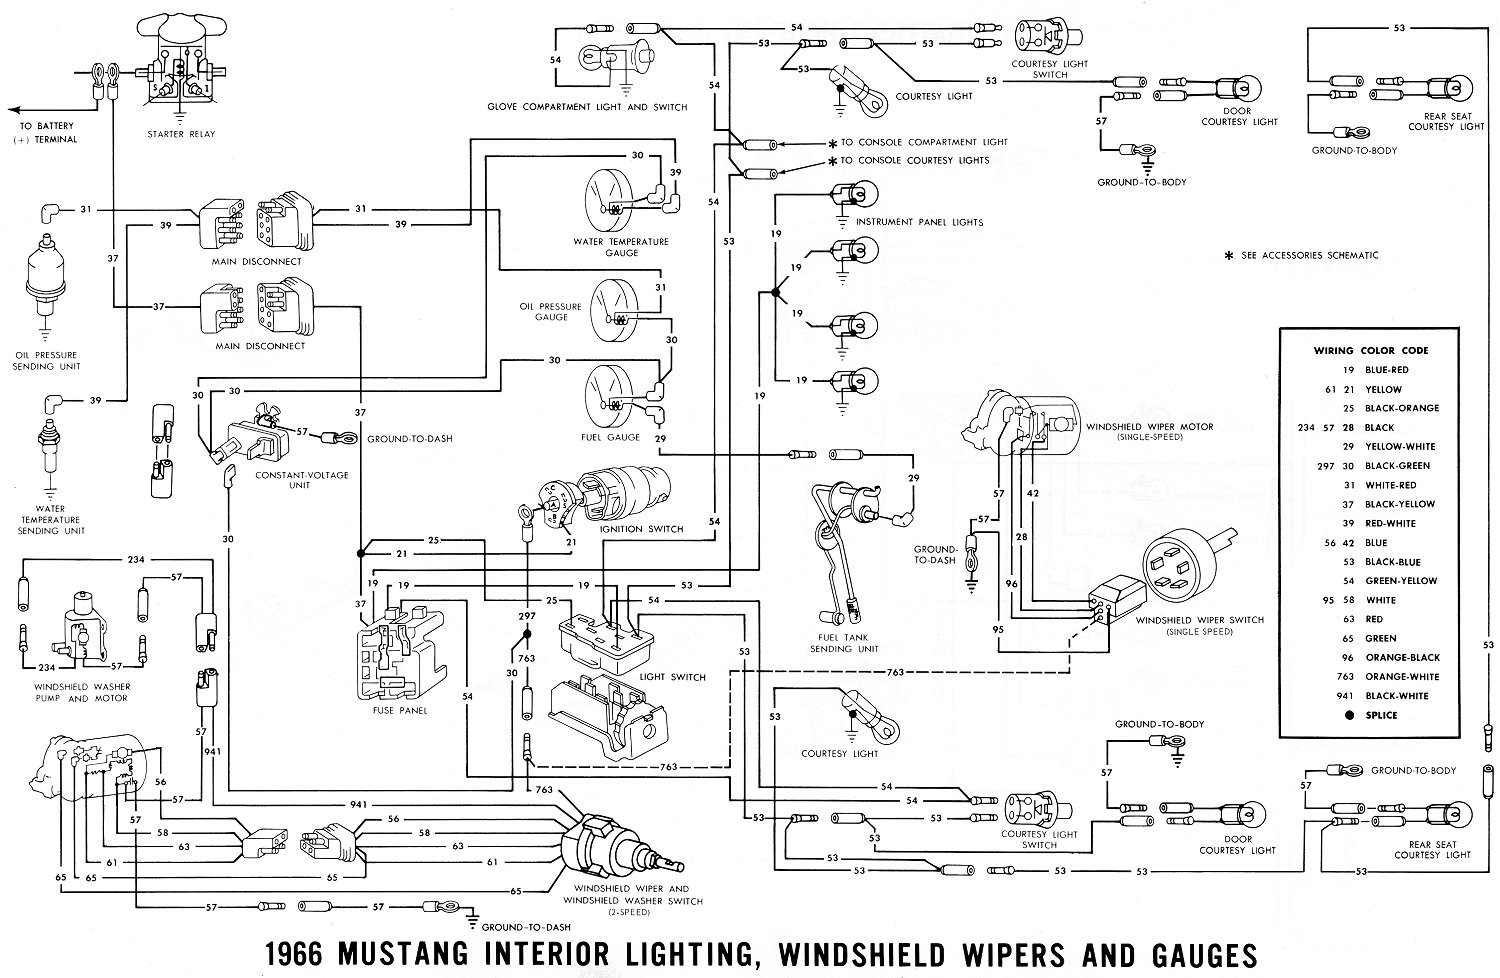 1974 Mustang Fuse Panel Diagram Free Wiring For You 2004 Gt Database Rh 6 1 Infection Nl De